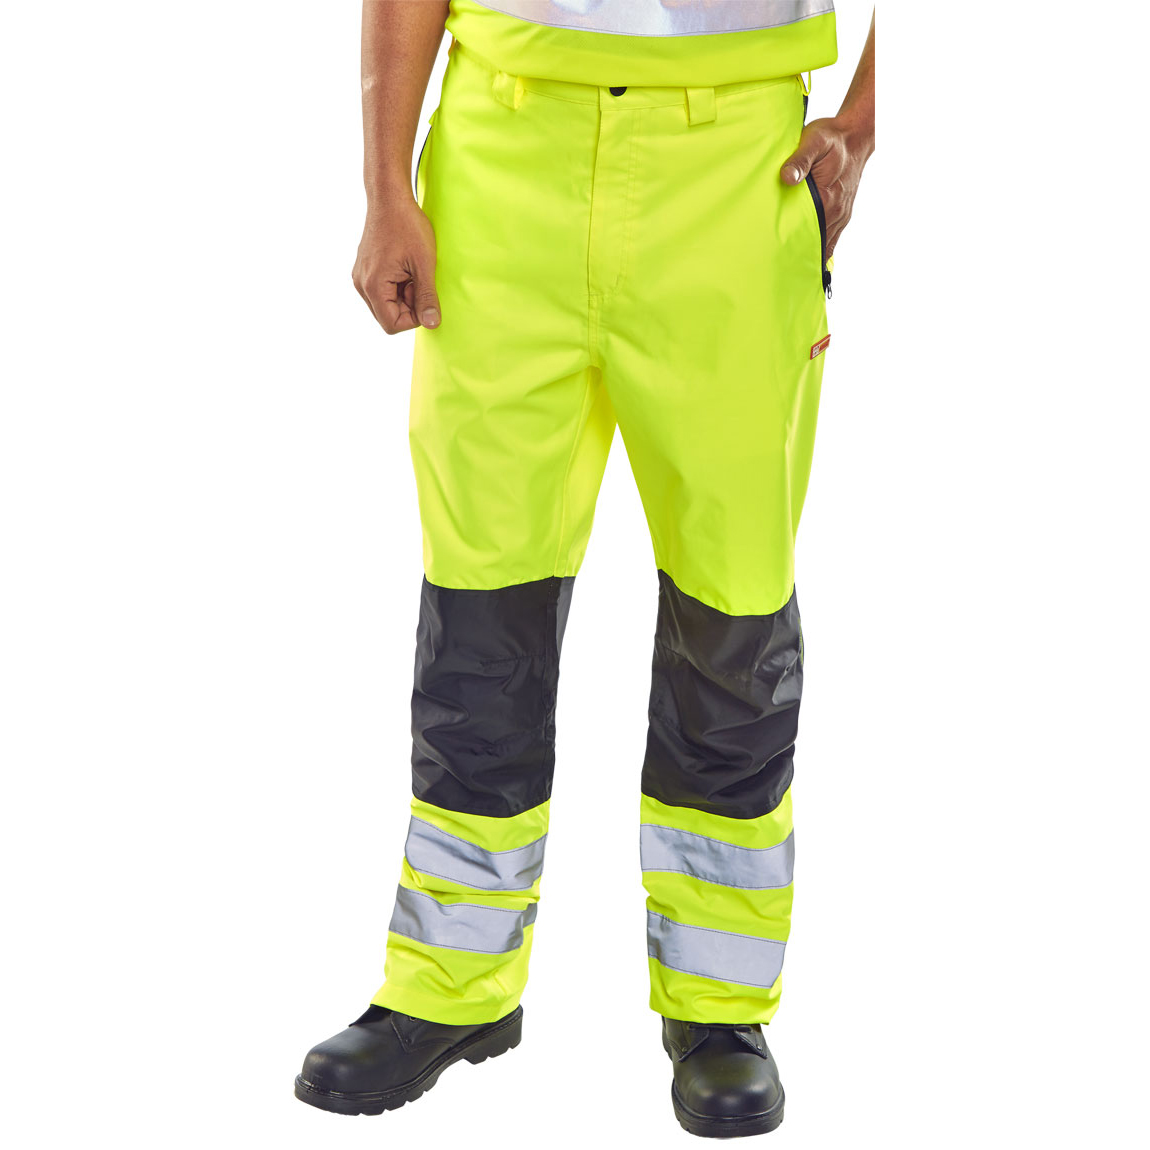 Ladies B-Seen Contrast Trousers Hi-Vis Waterproof L Saturn Yellow Ref BD85SYL *Up to 3 Day Leadtime*